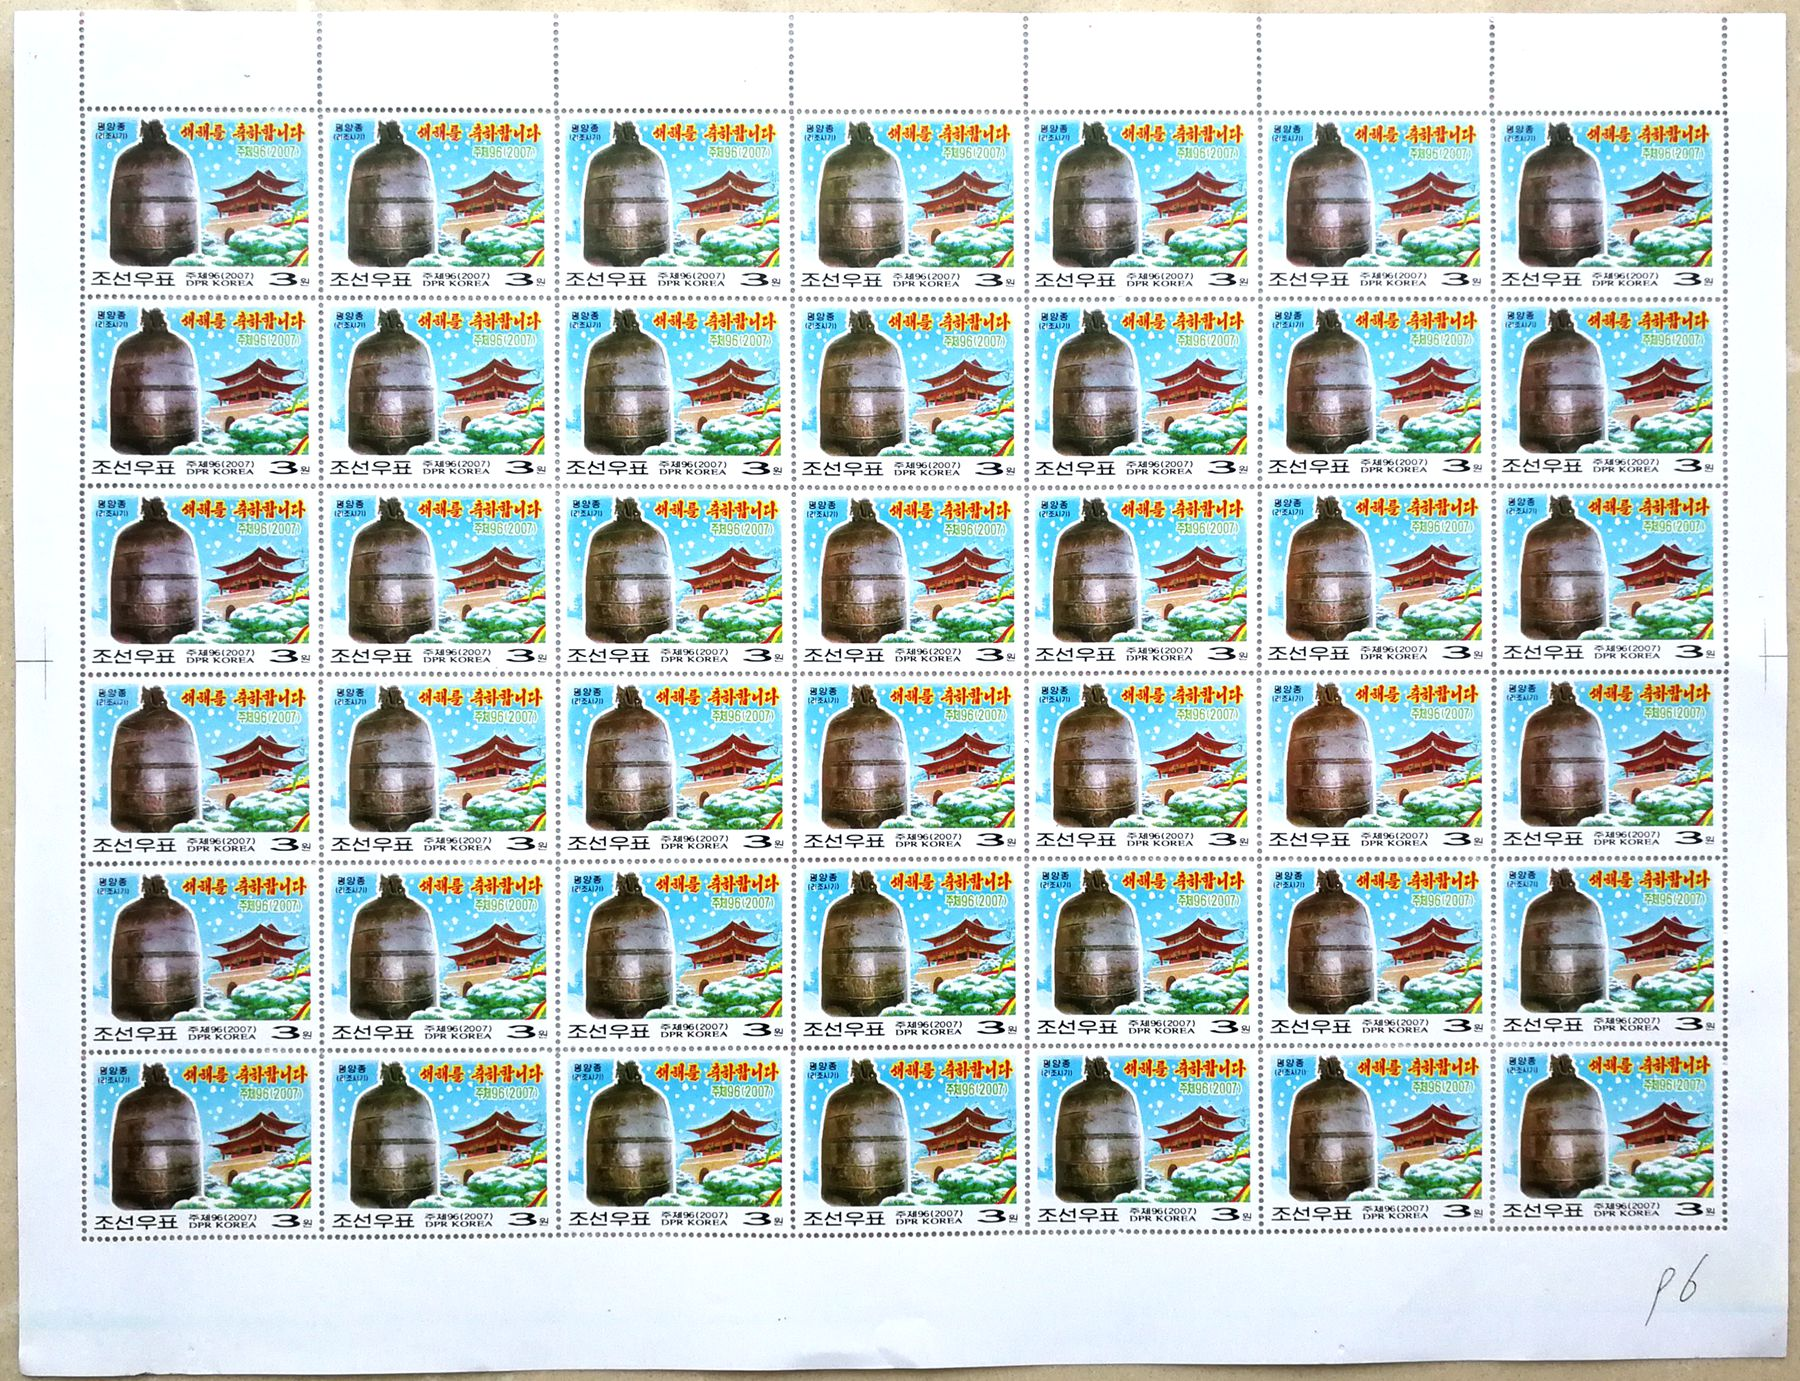 L4458, Korea 2017 Happy New Year Bell, Full Sheet of 42 Pcs Stamps